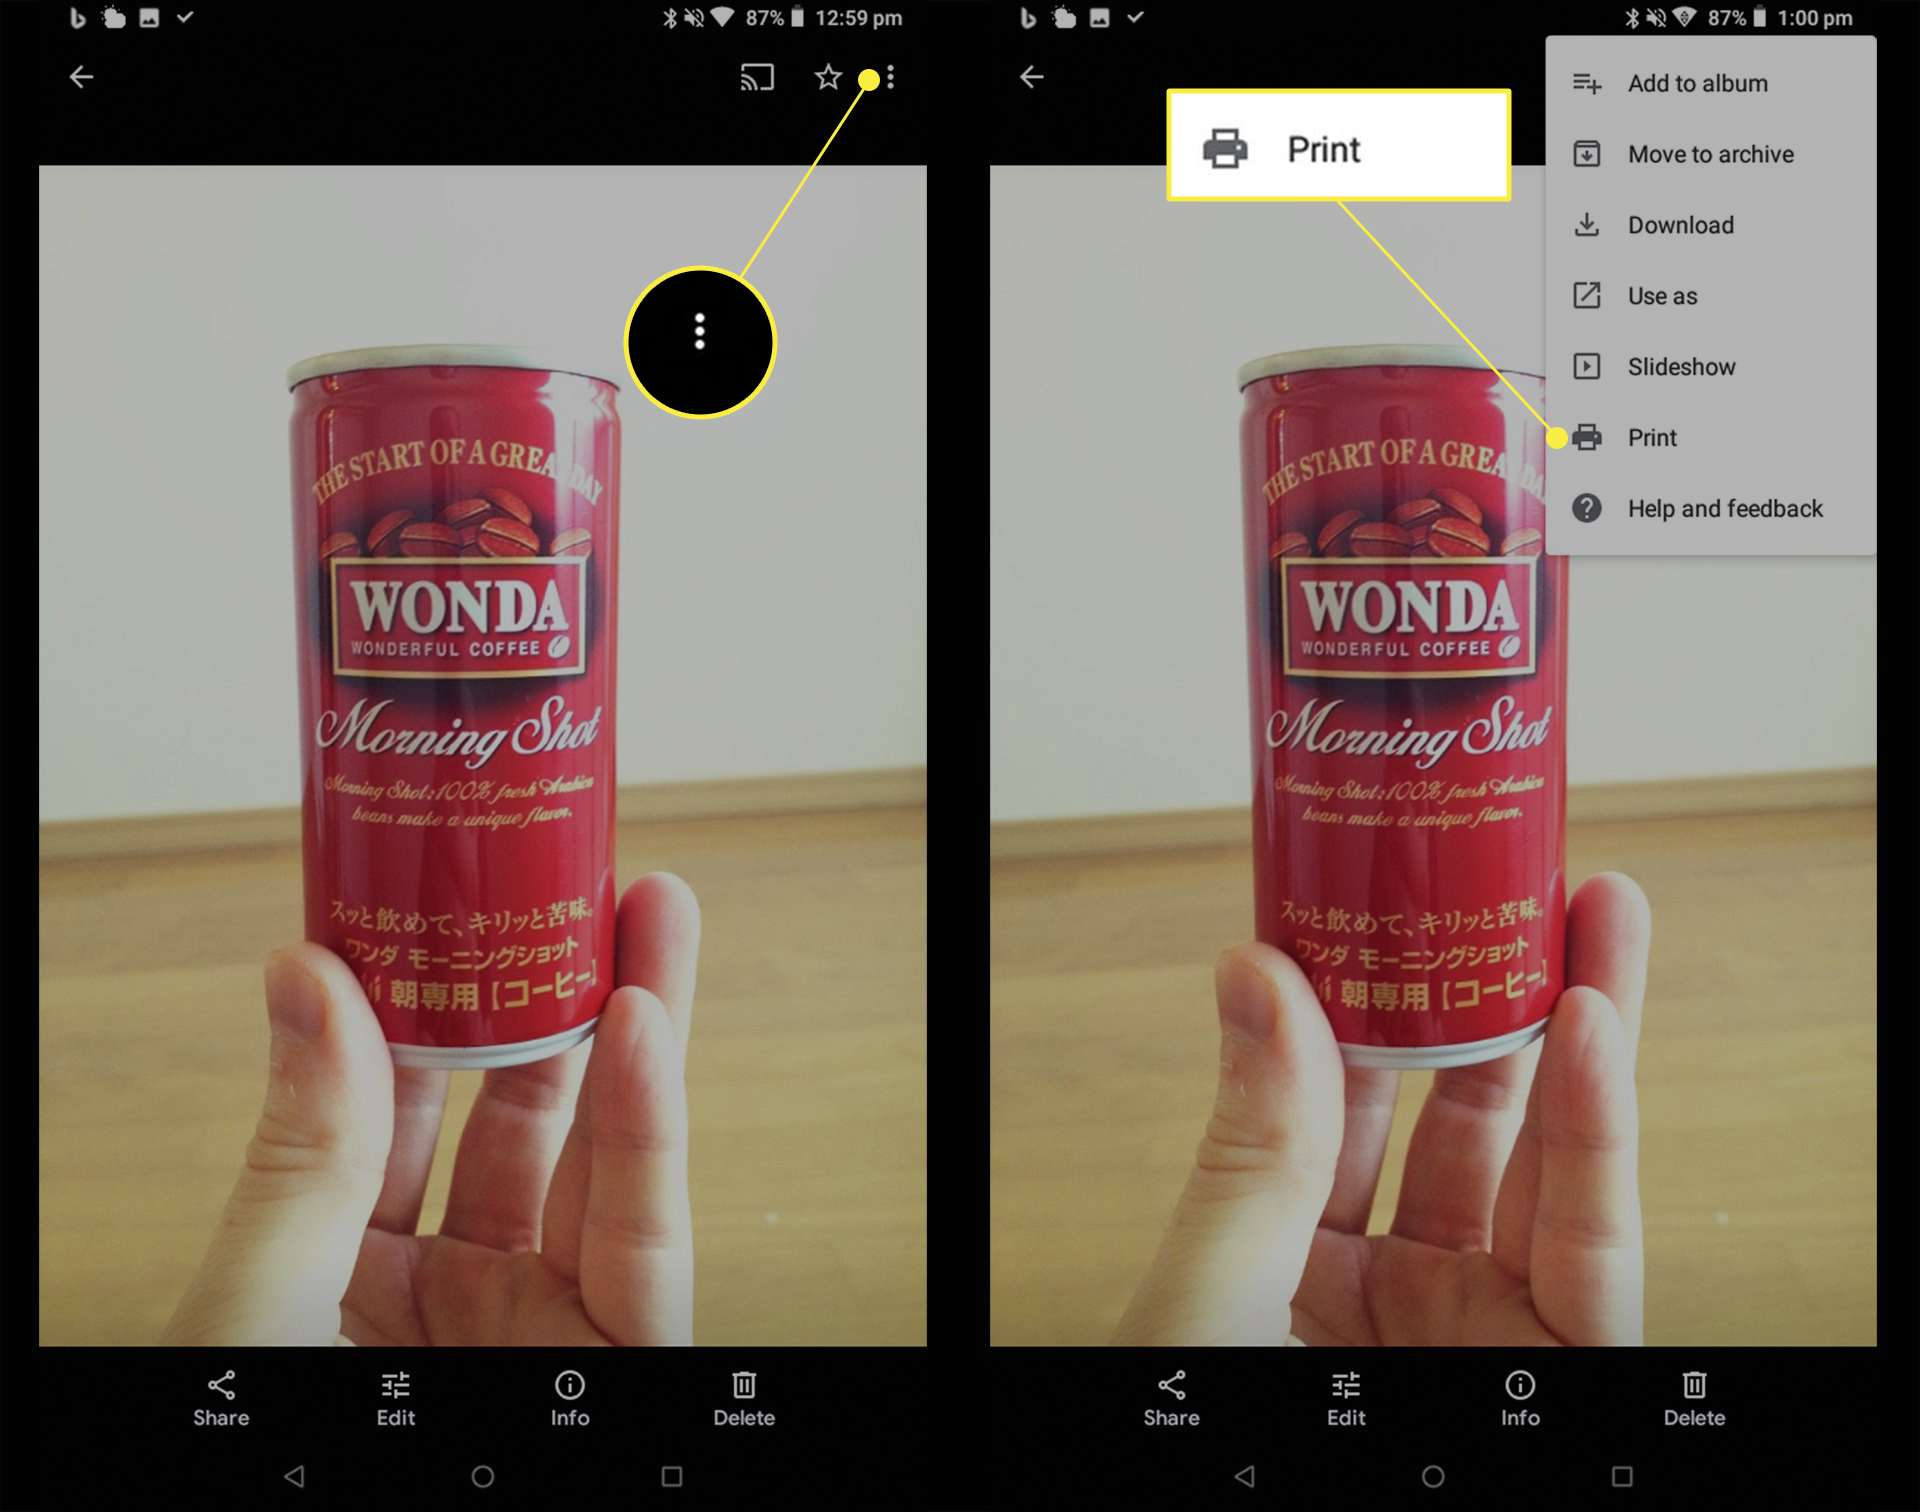 A photo of a can of Wonda Japanese coffee on an Android tablet with three dots and Print highlighted in menu